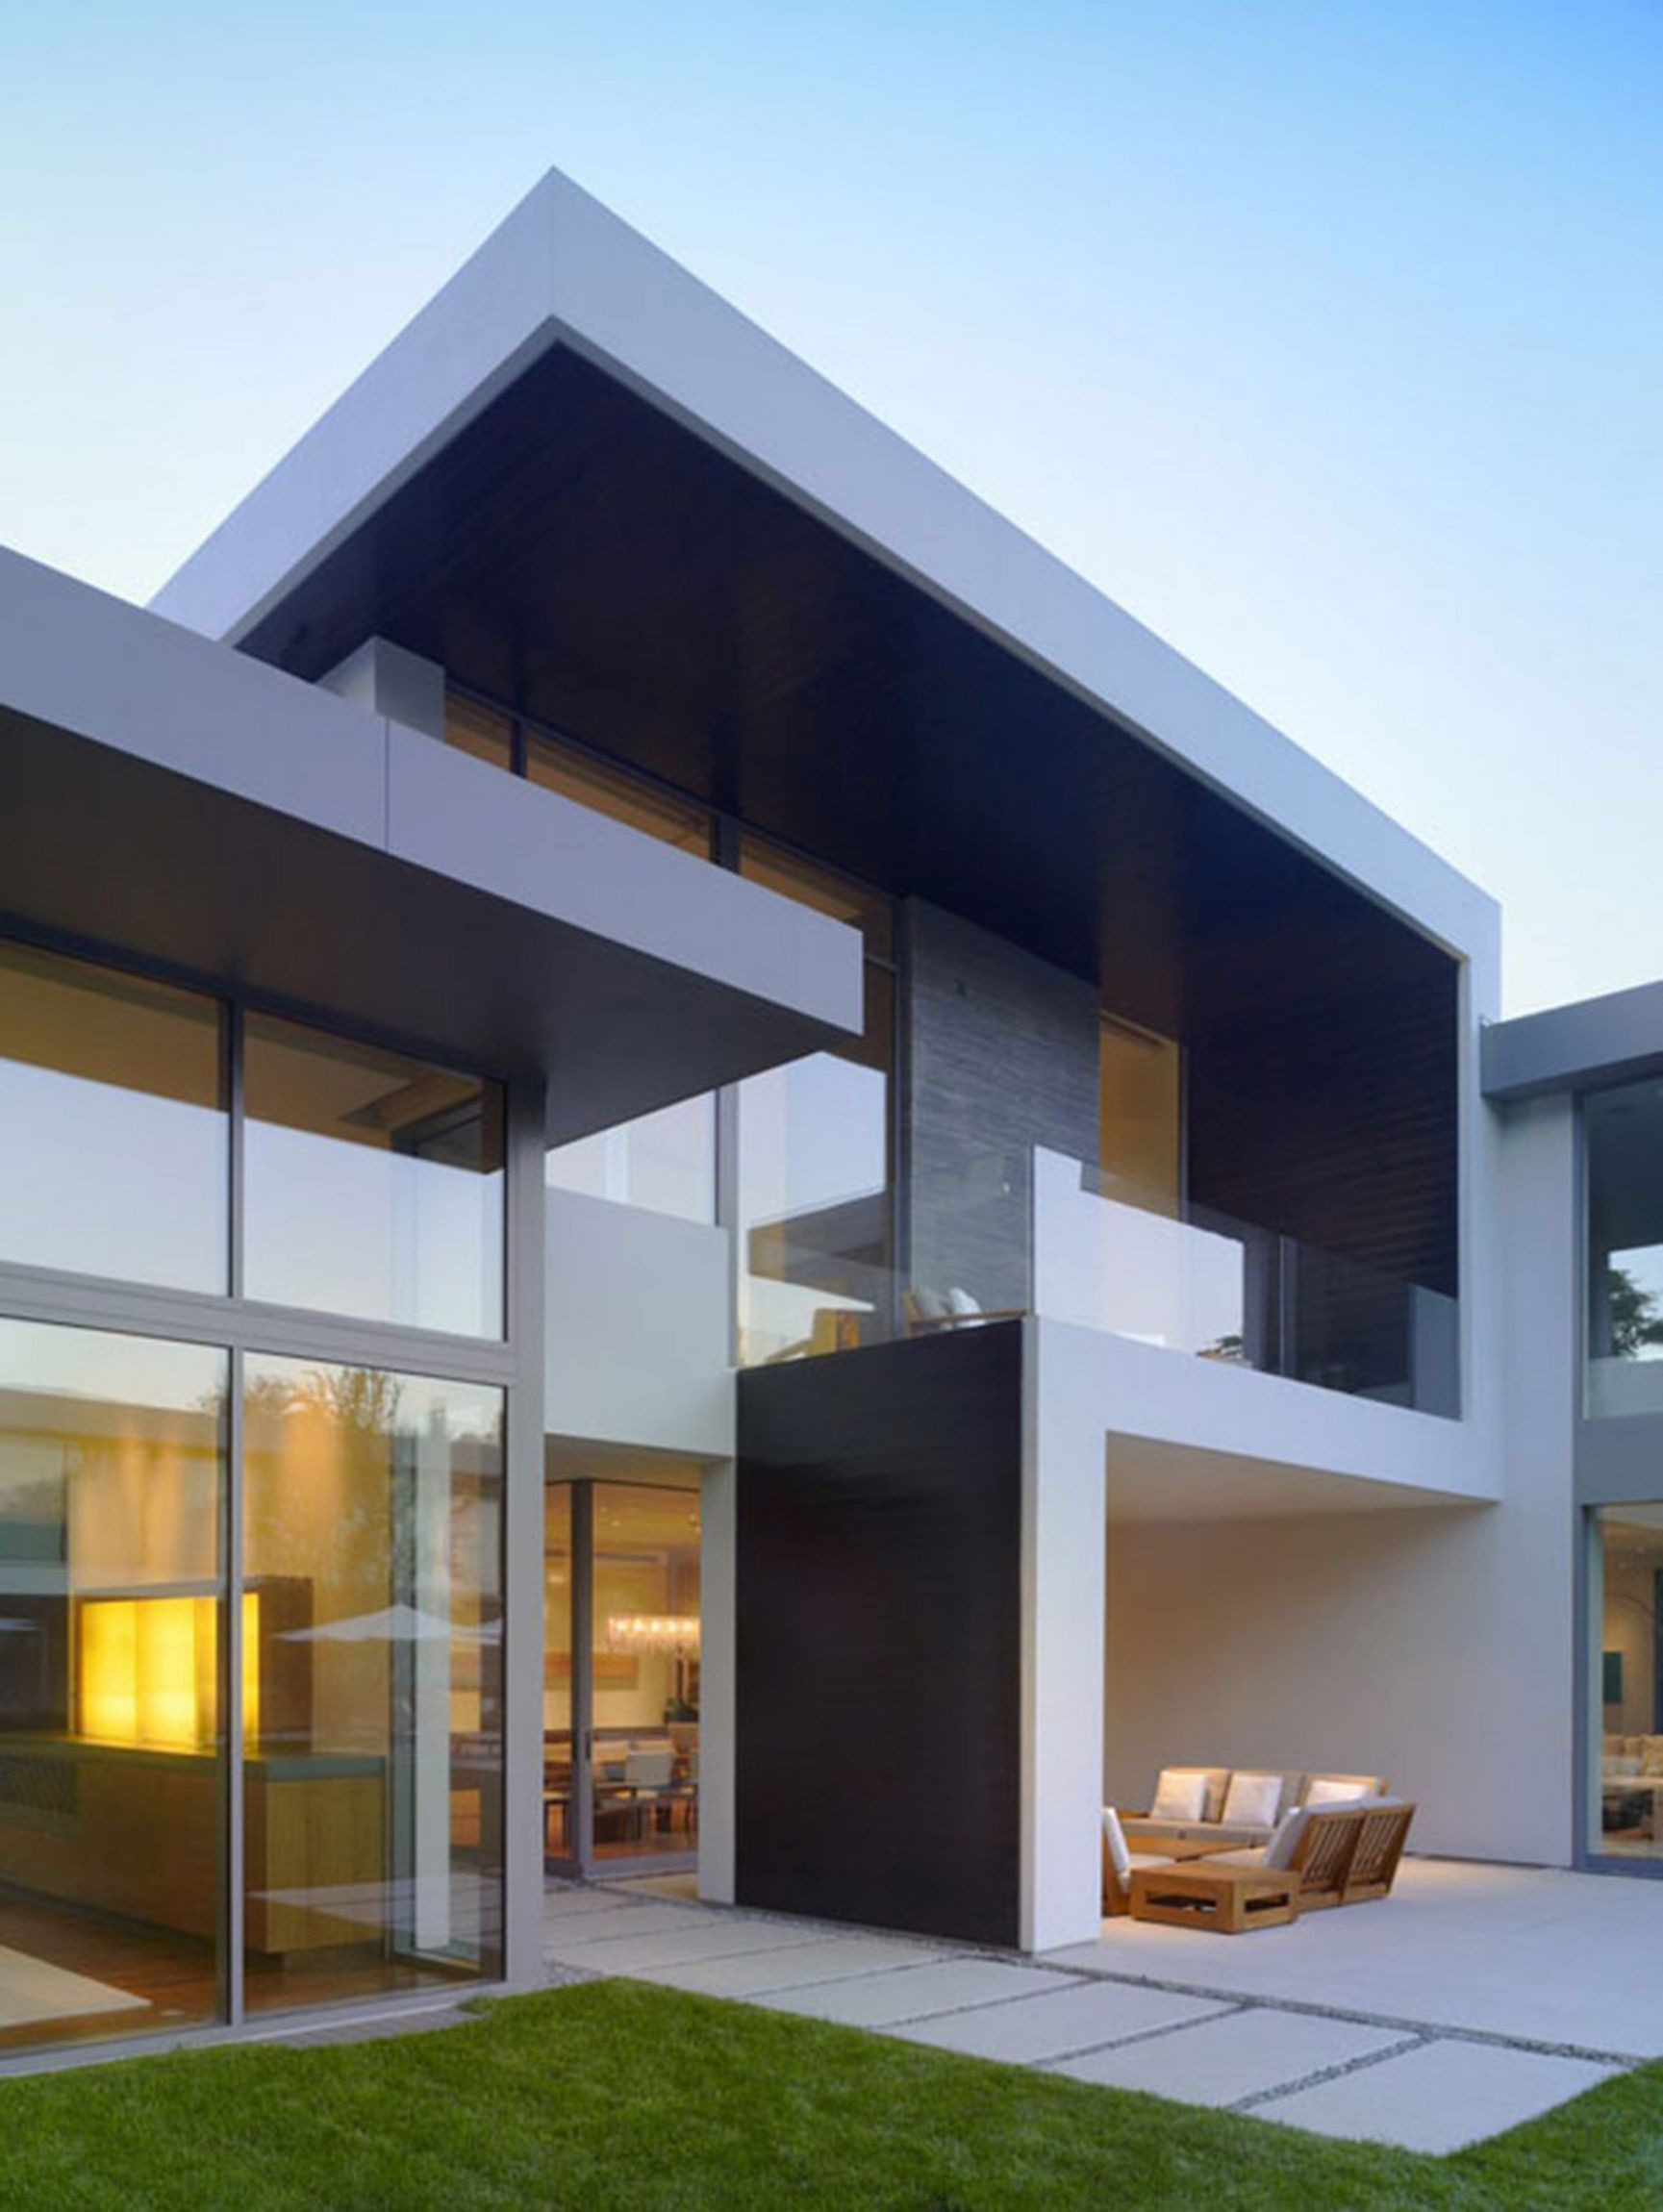 Unique House Design Ideas Best Of 21 the Most Unique Modern Home Design In the World [new